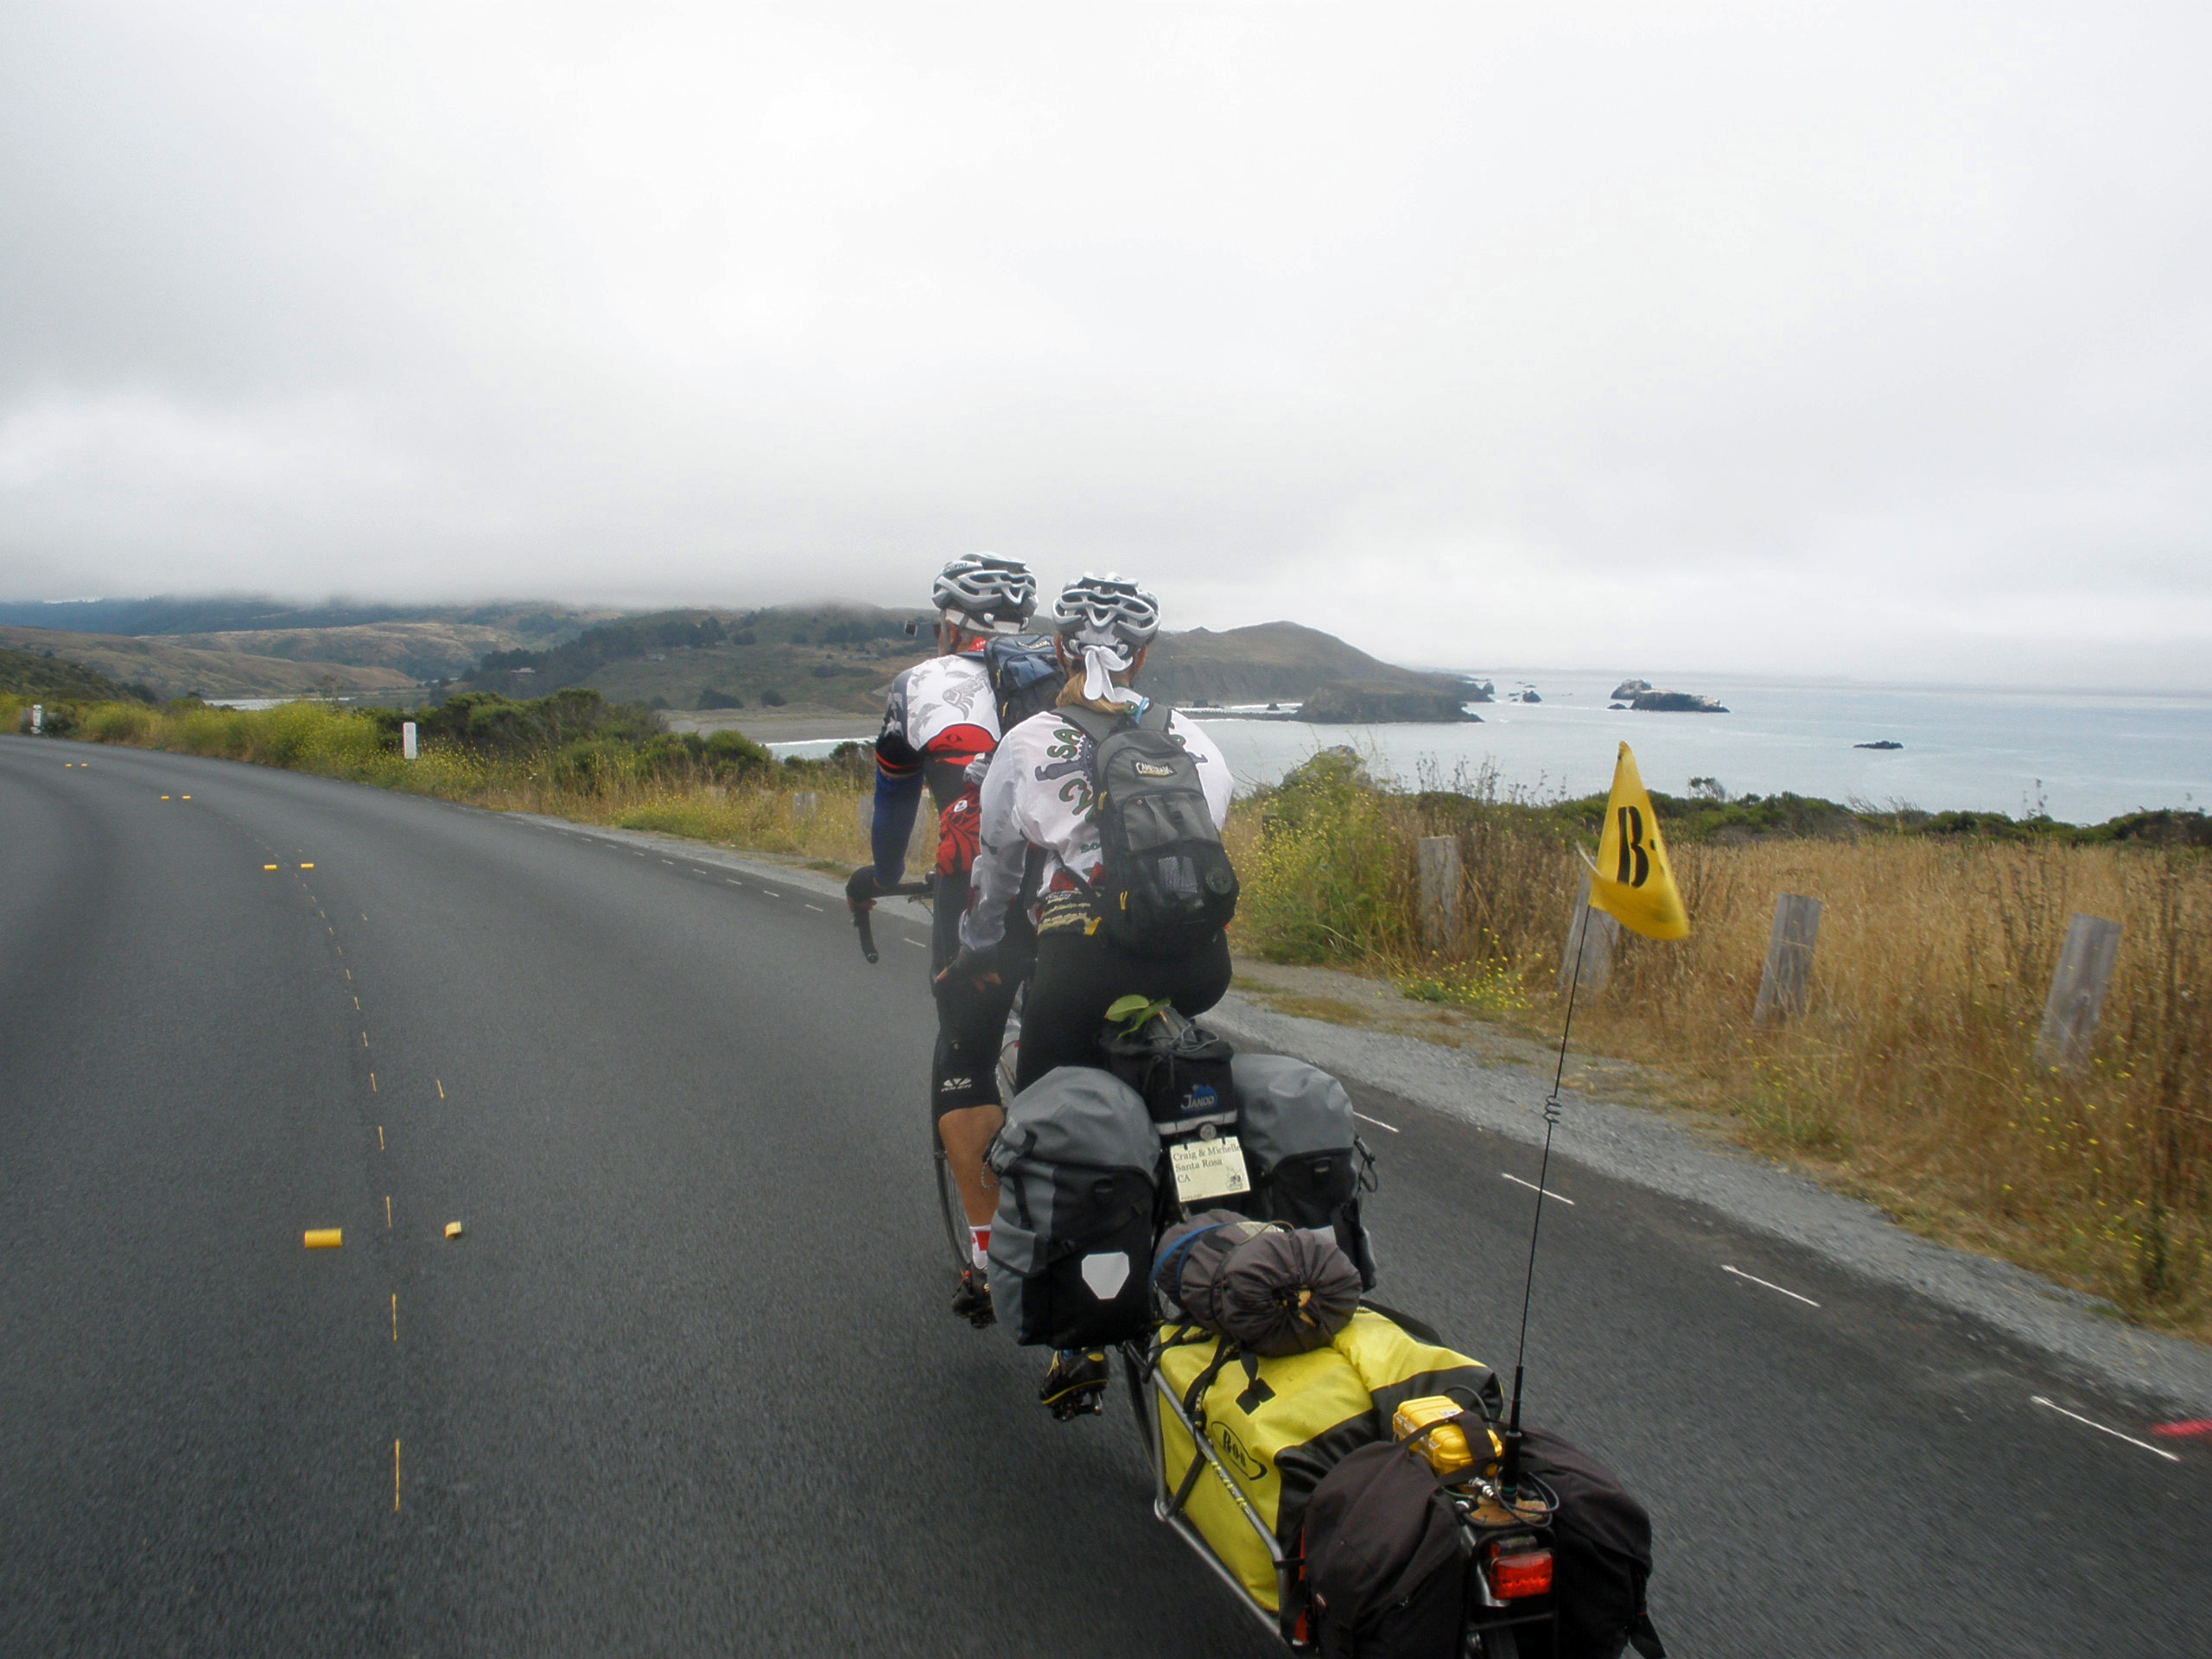 Nearing Jenner, Goat Rock in the distance